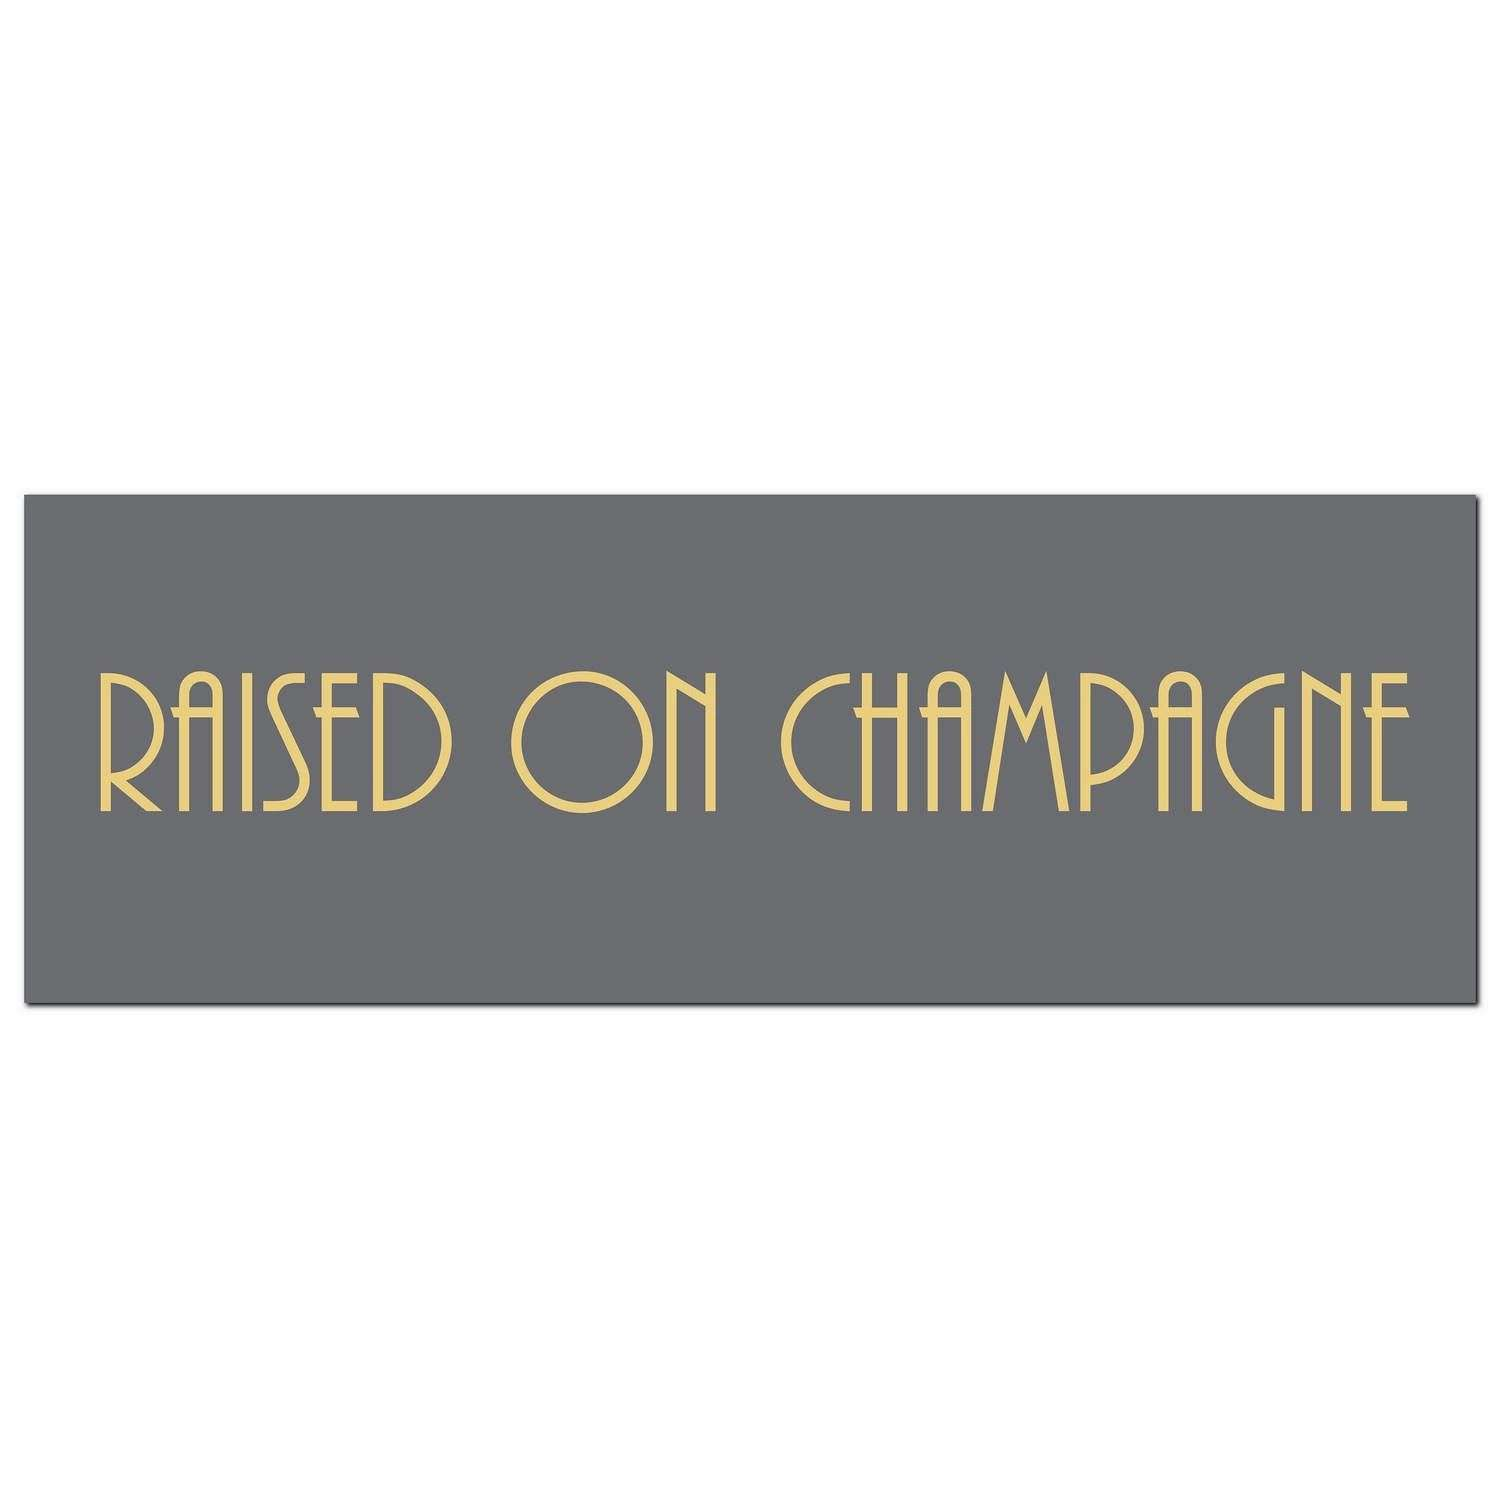 'Raised on champagne' silver foil on grey background